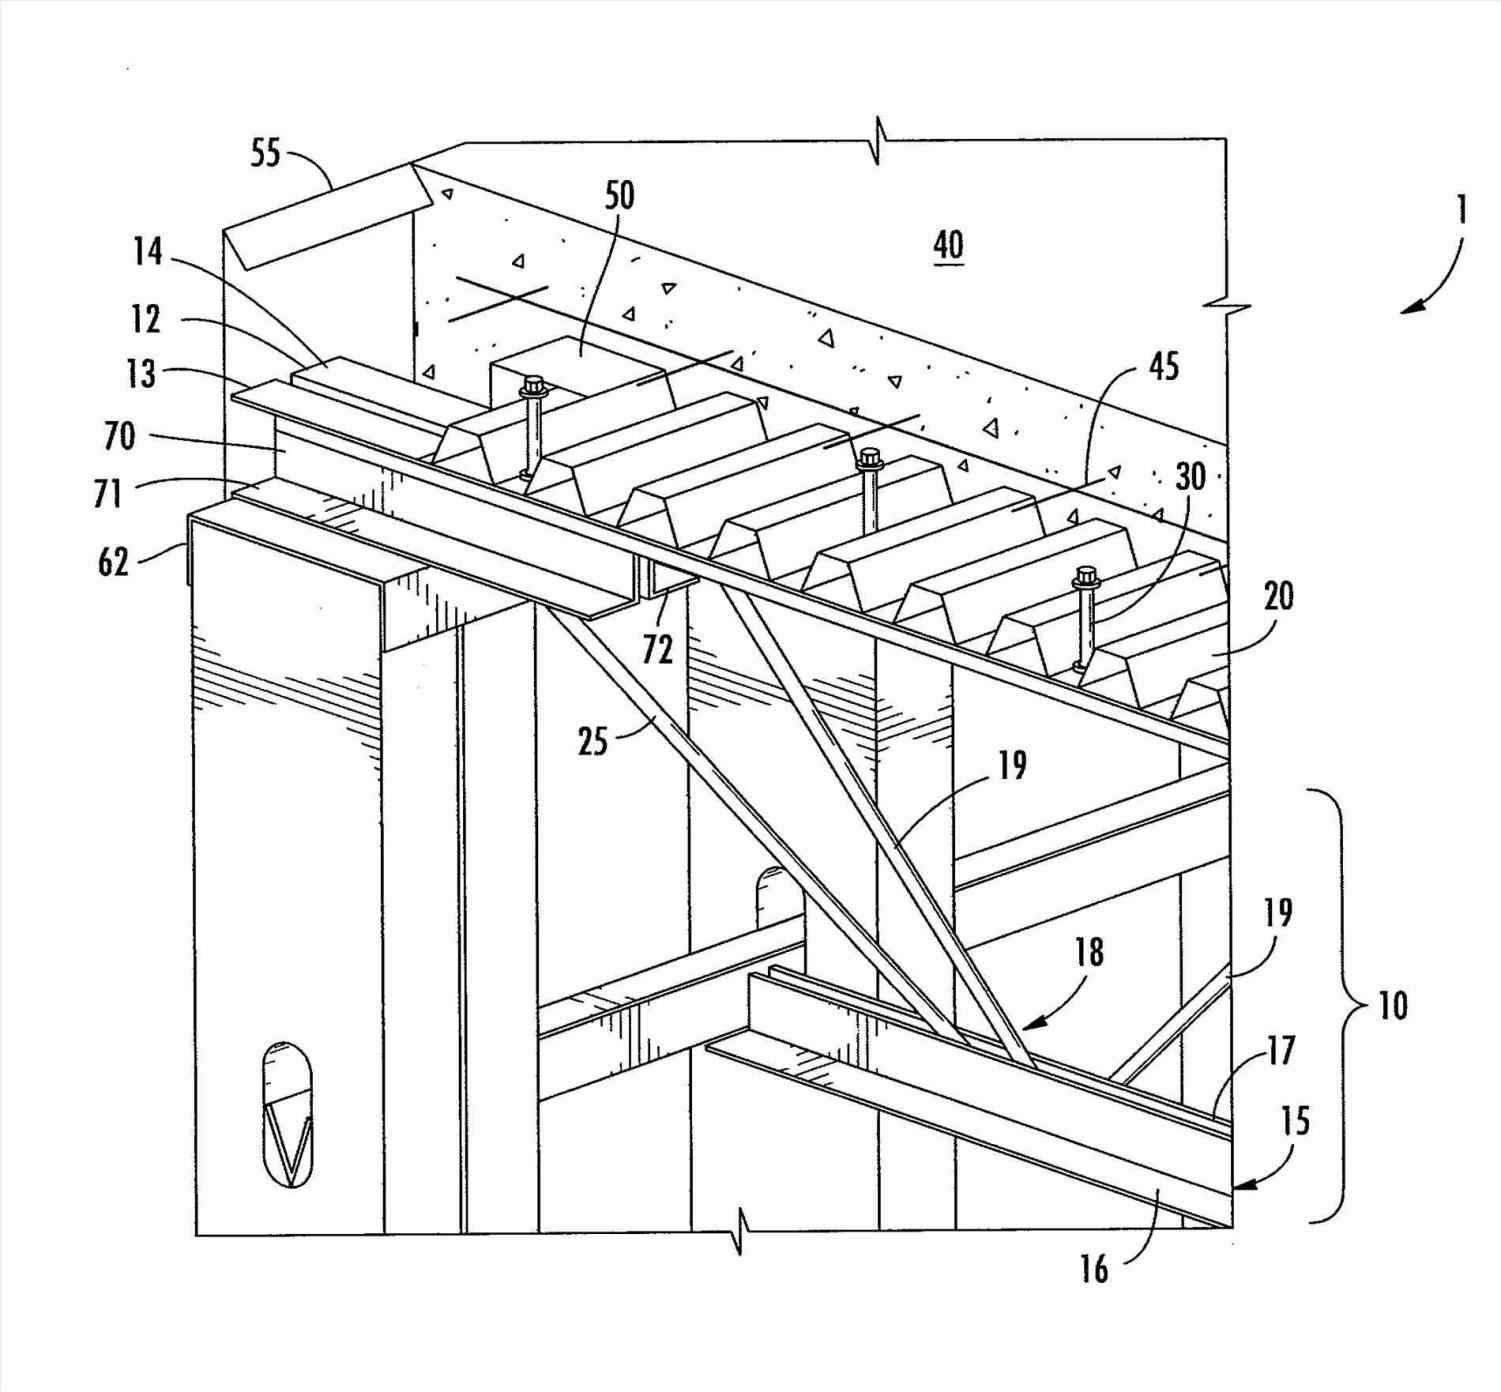 Pin On Roof Design